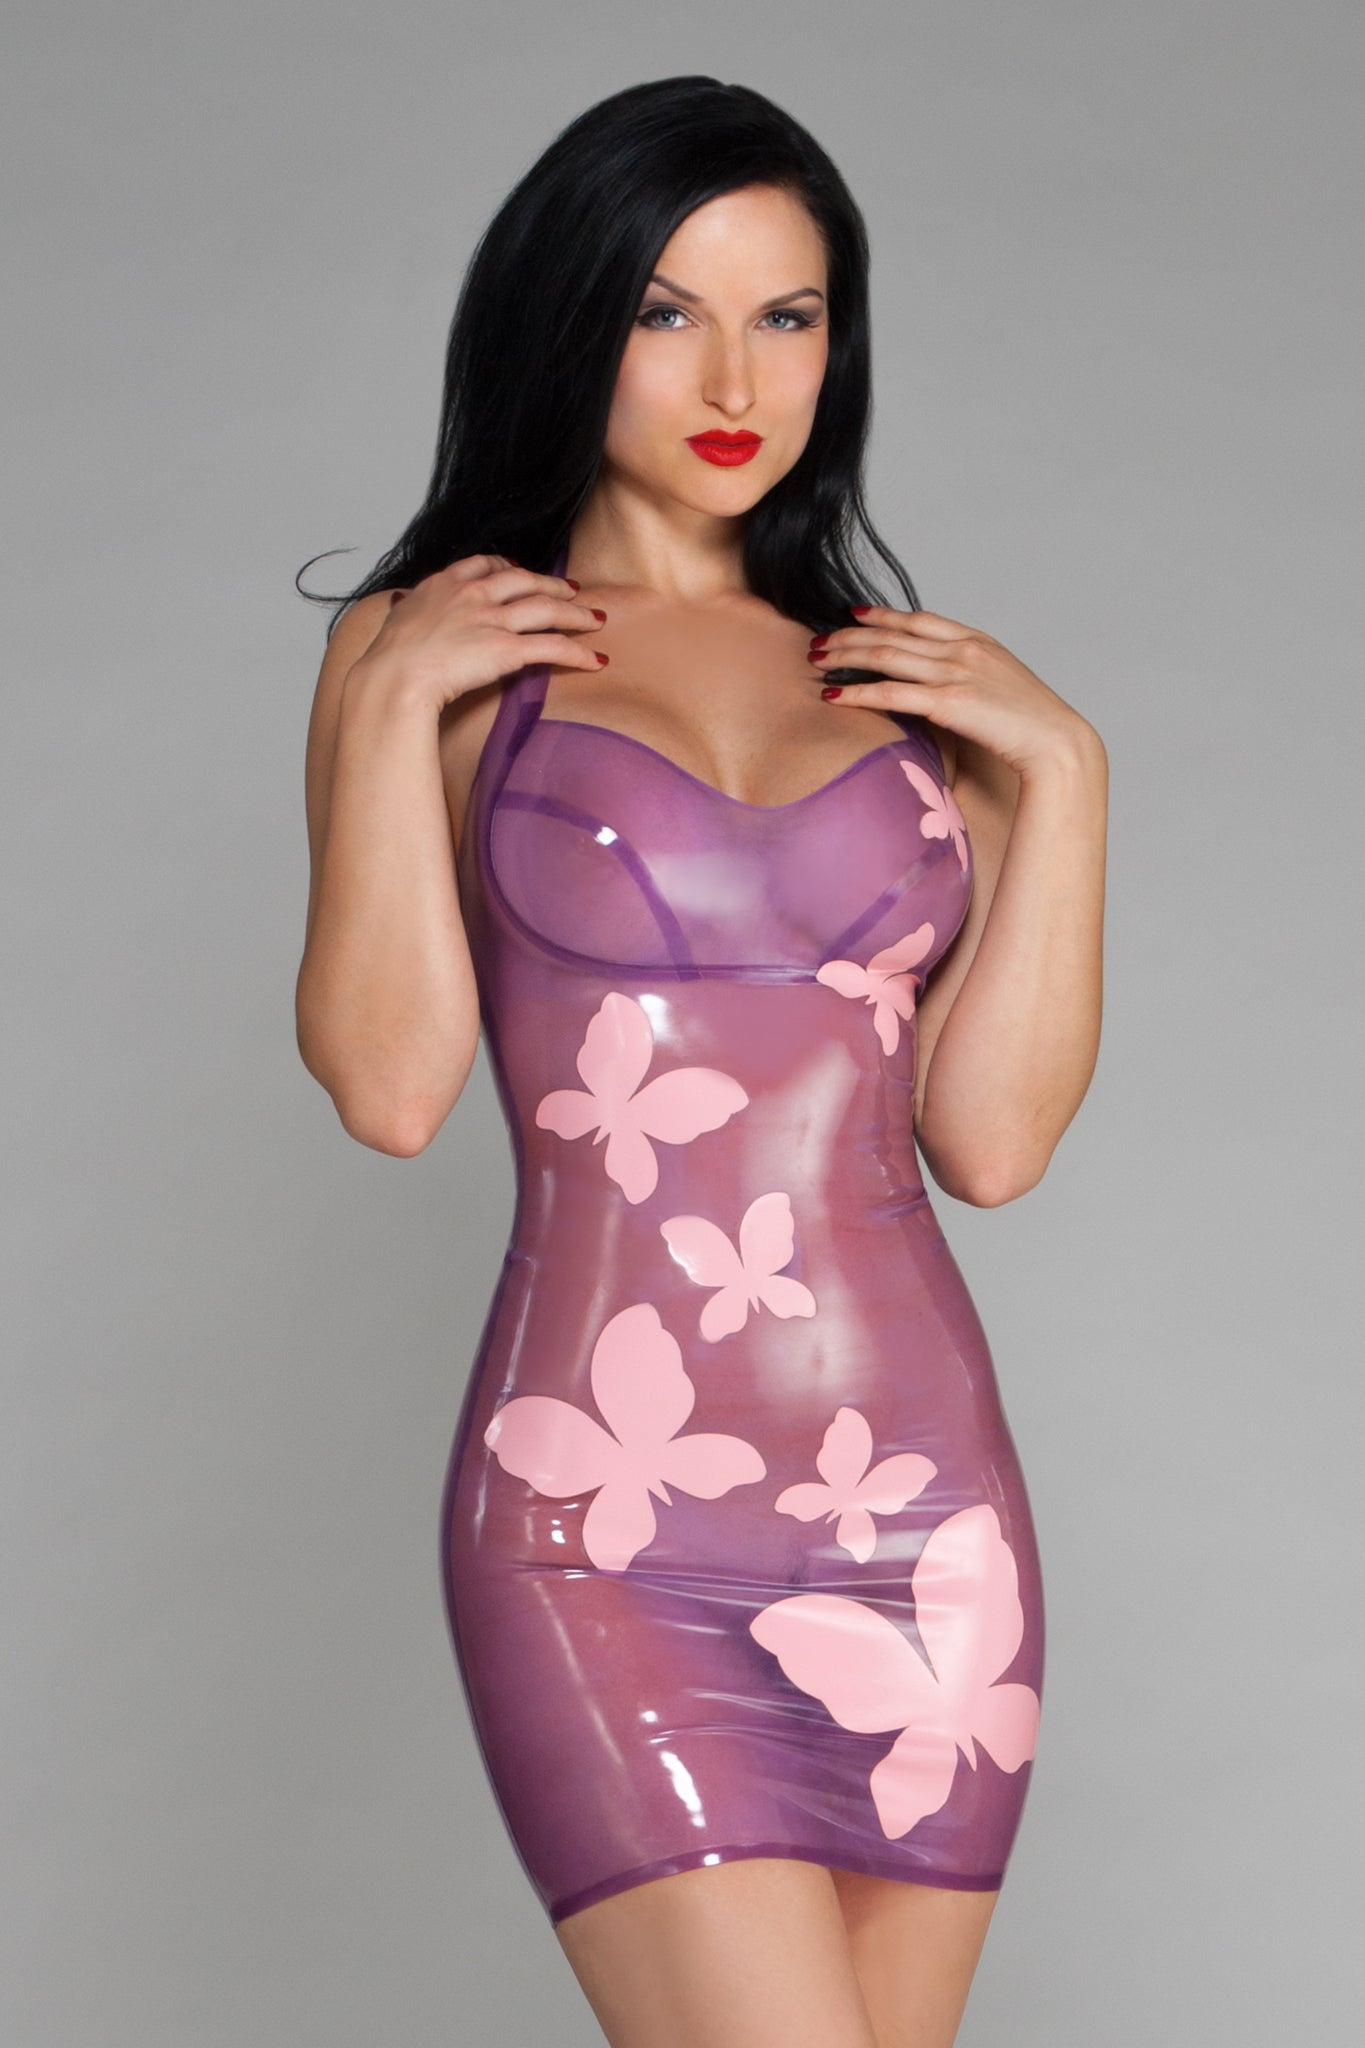 Transparent Lilac Latex Dress